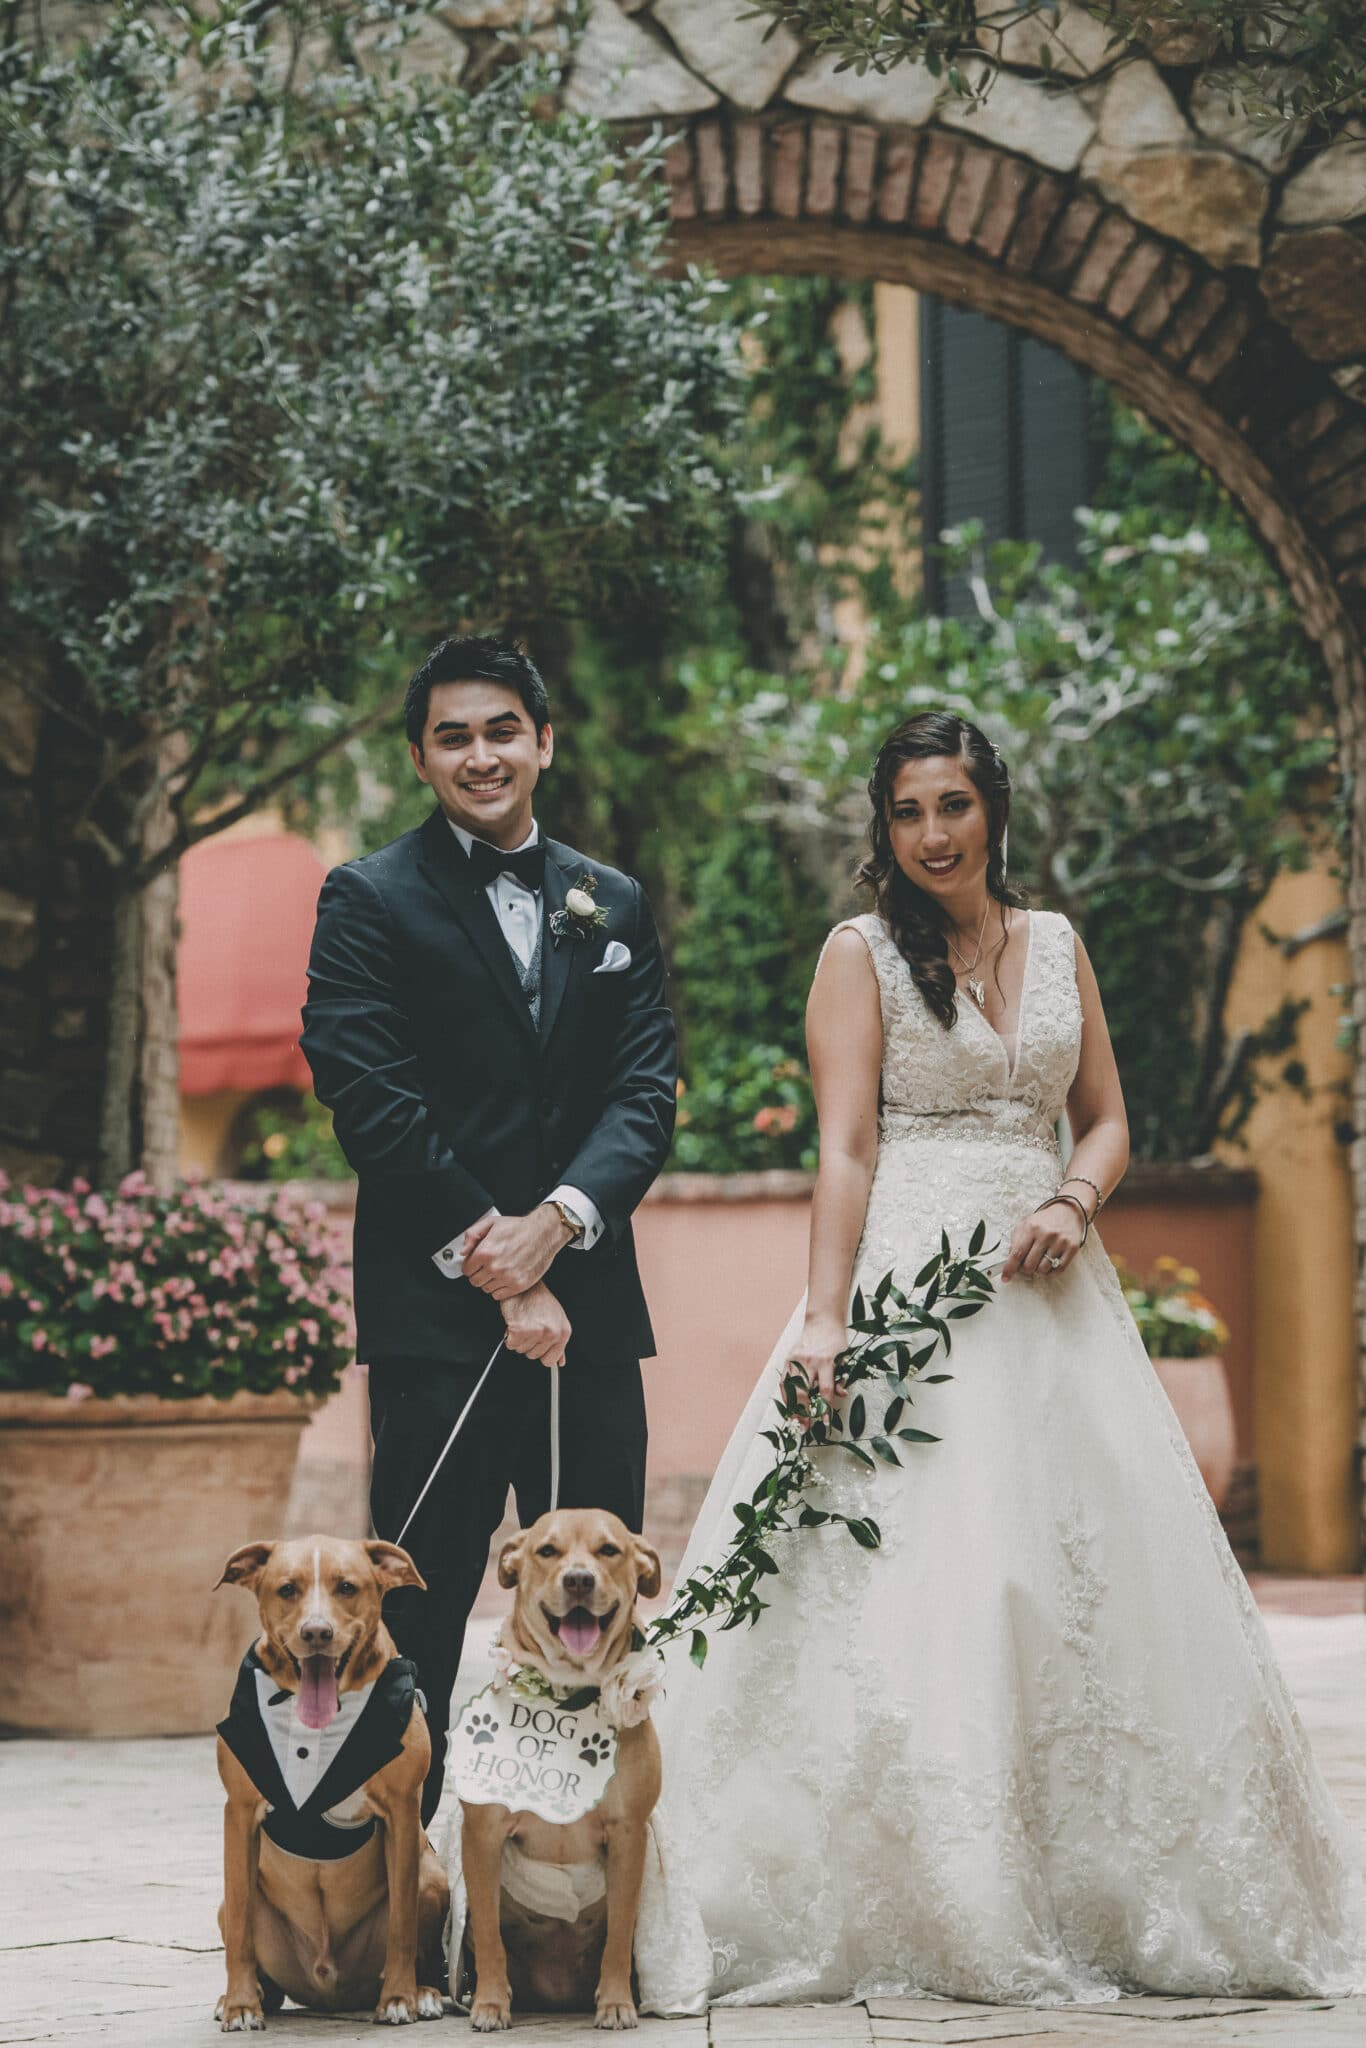 bride and groom outside with dogs dressed up